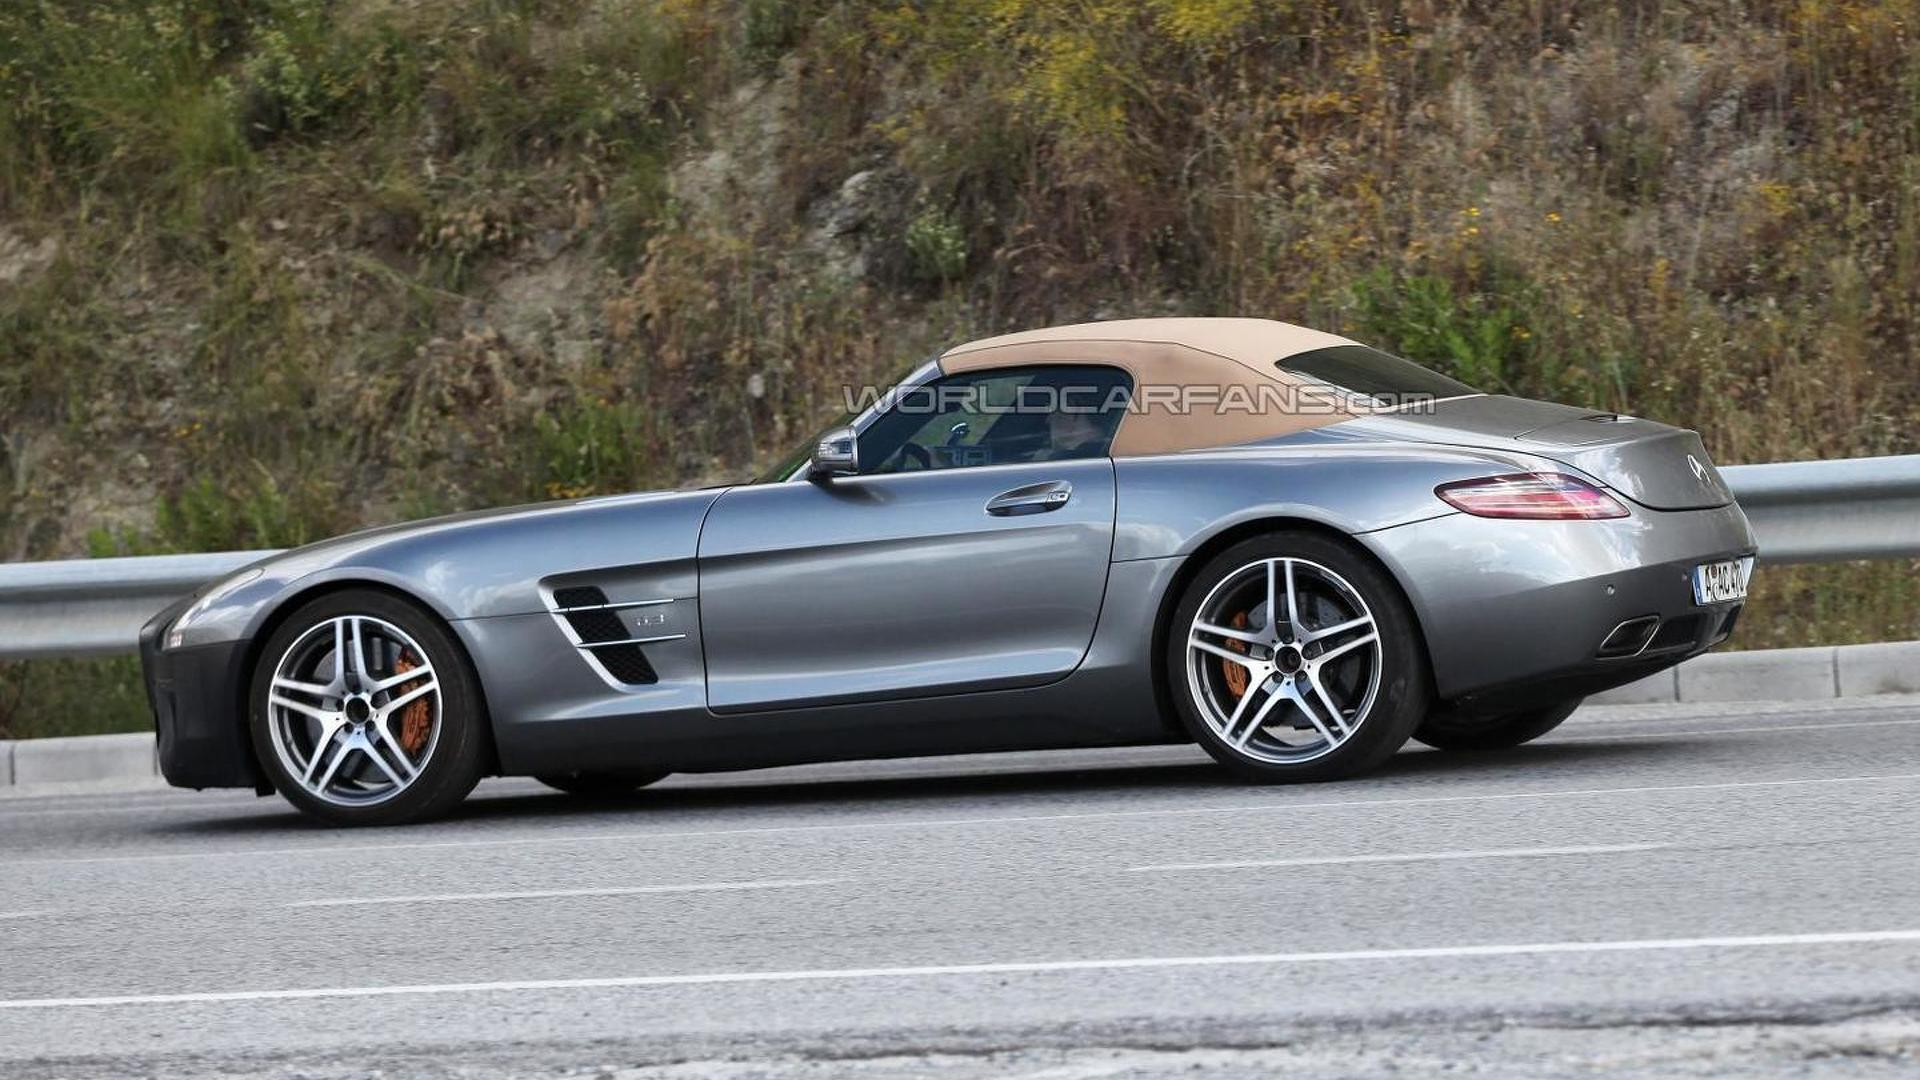 2015 Mercedes Benz Sls Amg Gt Roadster Spy Photo 19 05 2013 862754